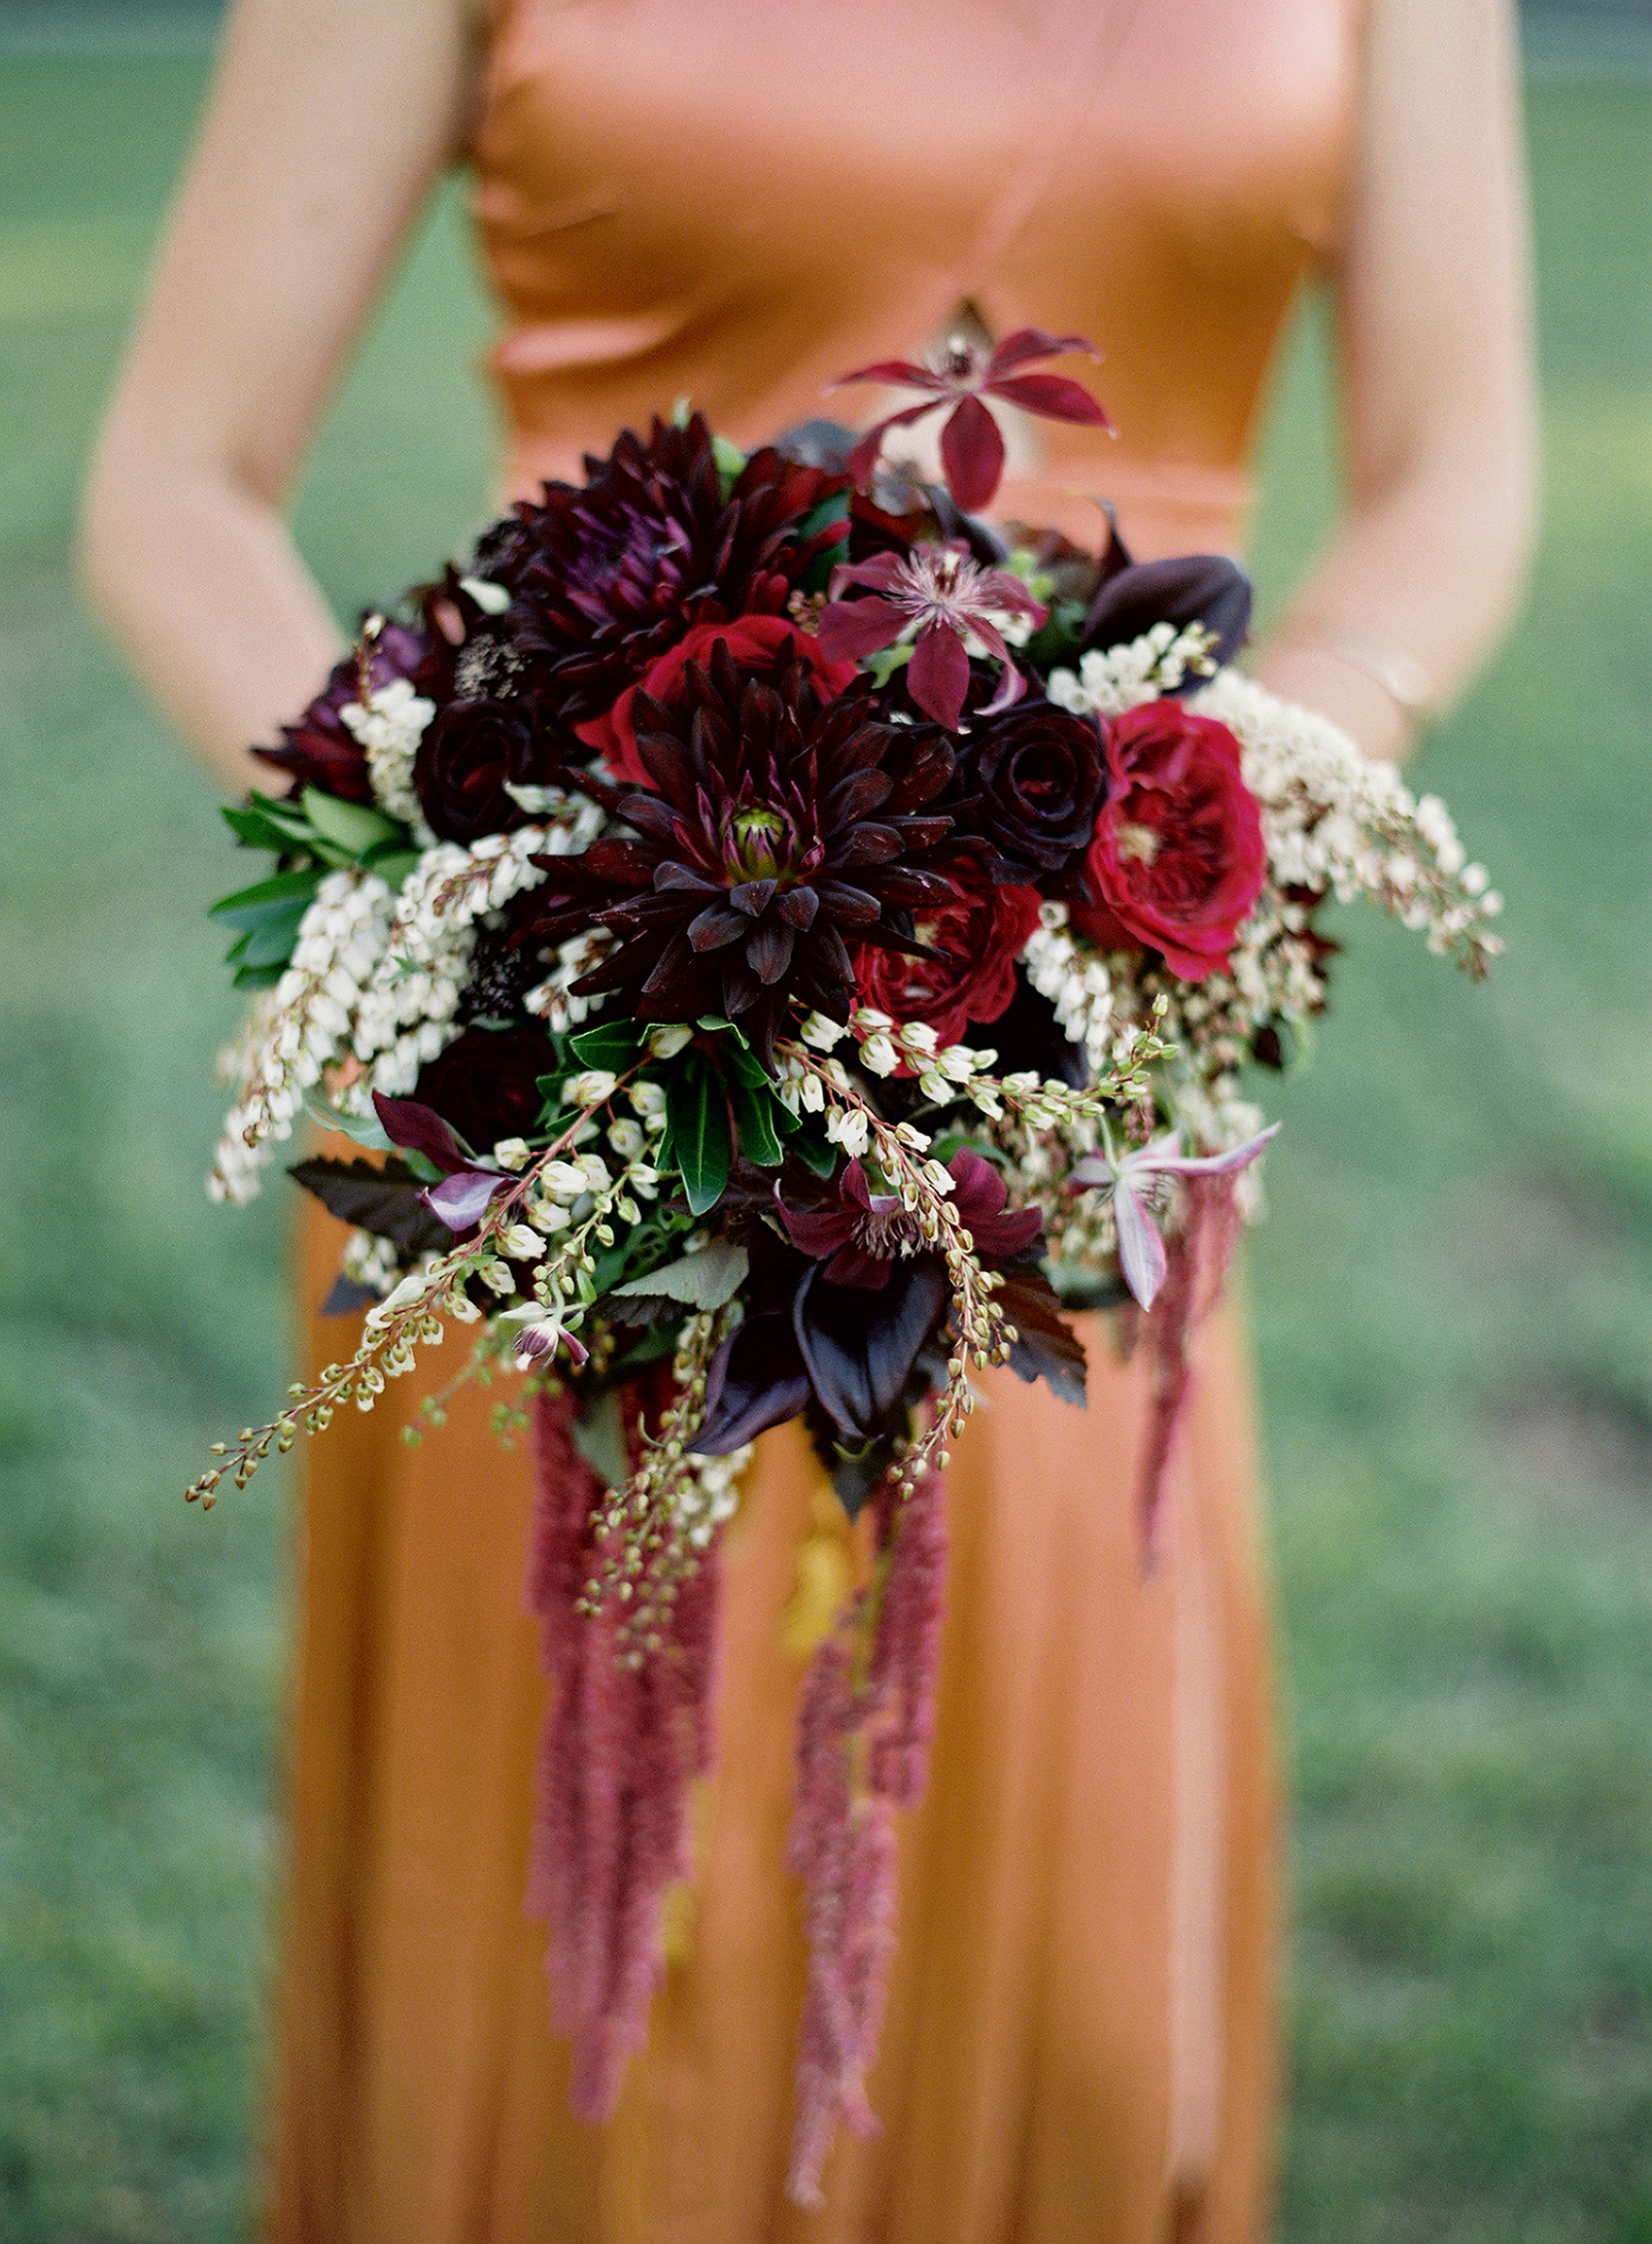 bouquet with red dahlias and calla lilies